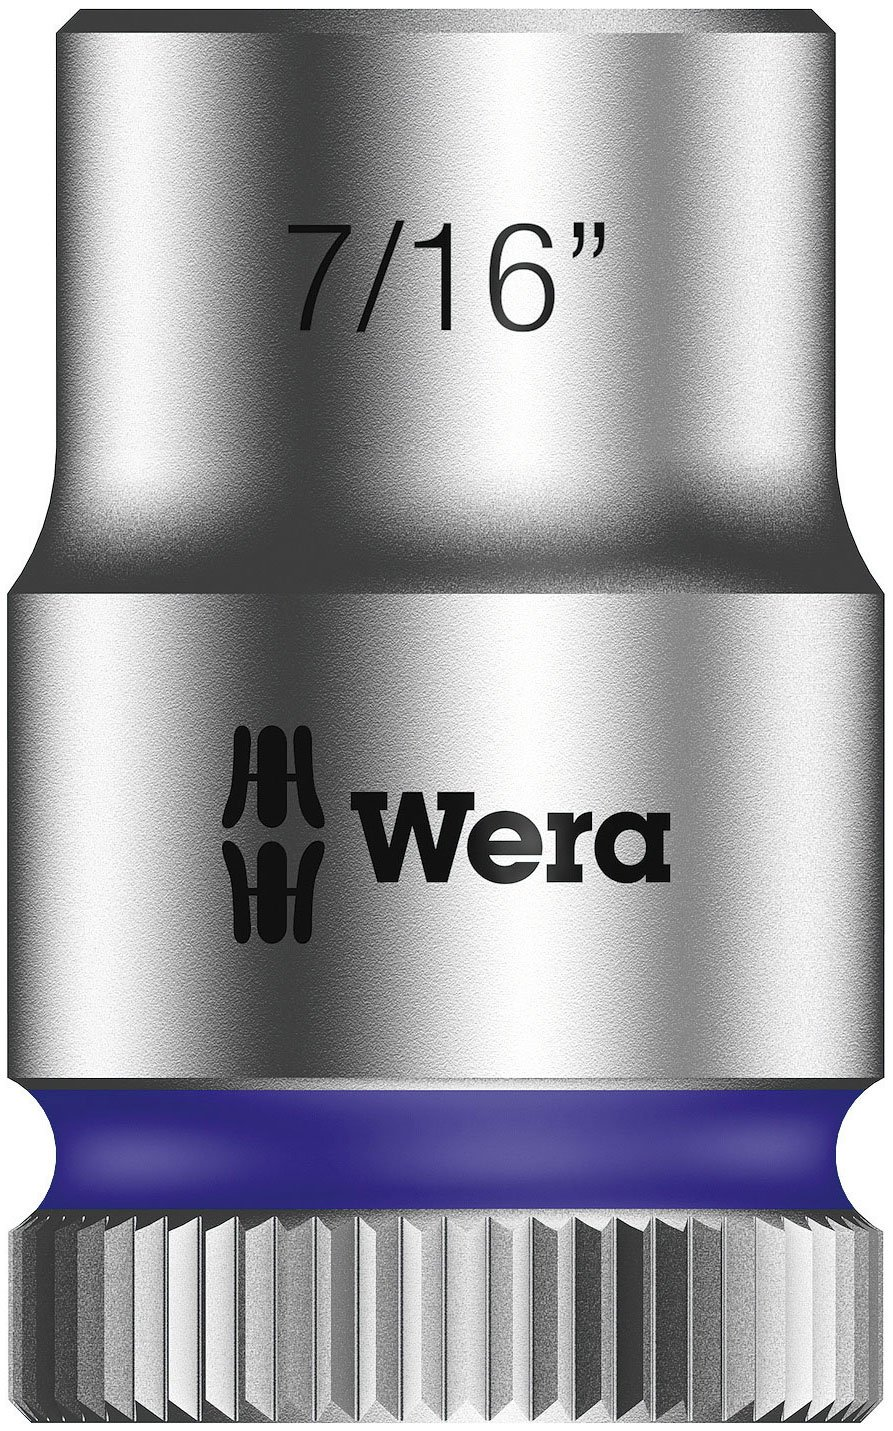 Wera Zyklop 8790 HMB 3/8-Inch Socket, Hex Head 22mm x Length 29mm Wera Tools 05003567001